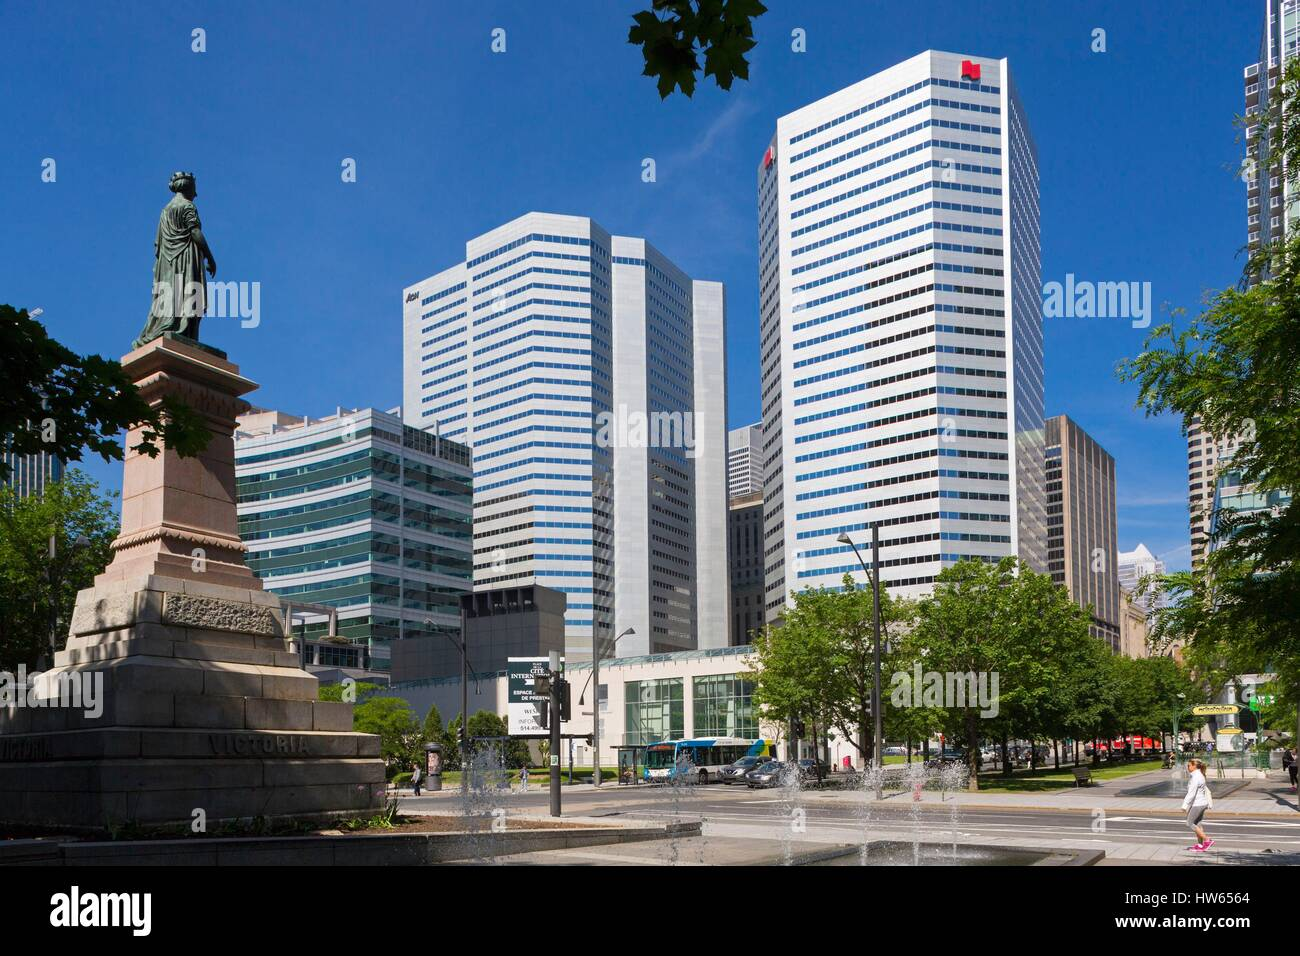 Canada Quebec province Montreal the International Quarter Victoria Square statue of the Queen Bell and National - Stock Image